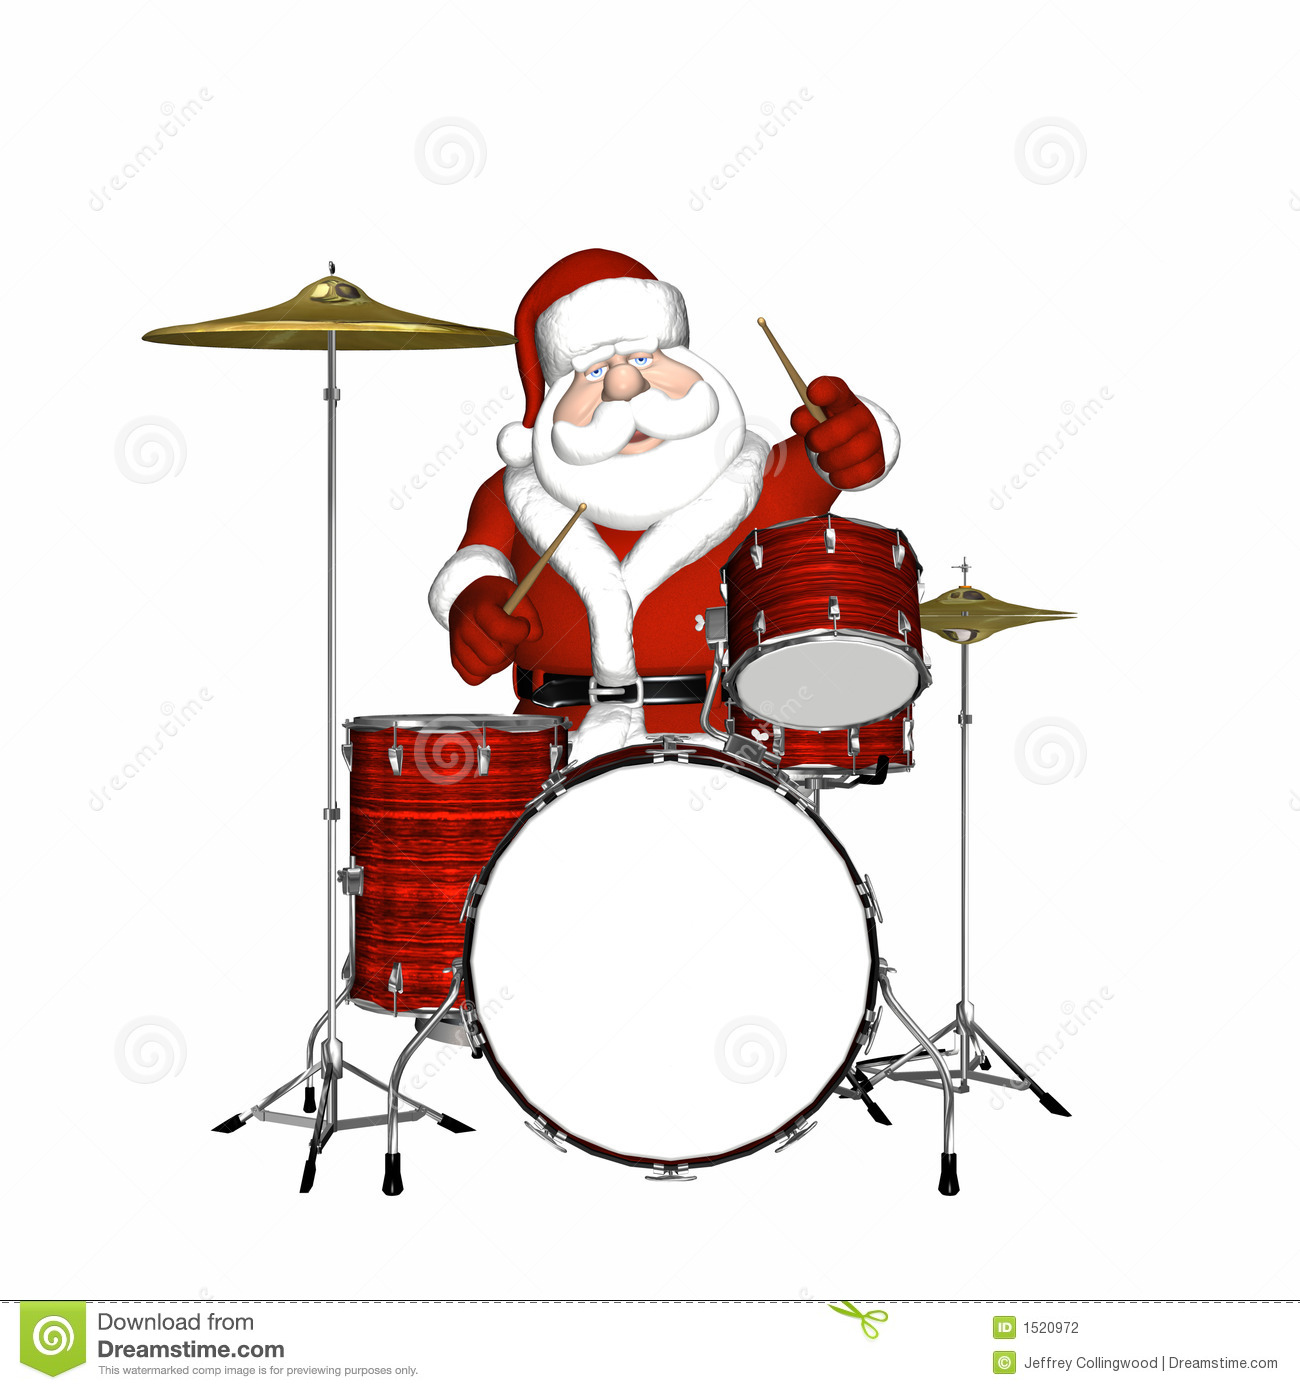 Santa Playing Drums 2 stock illustration. Illustration of glove.